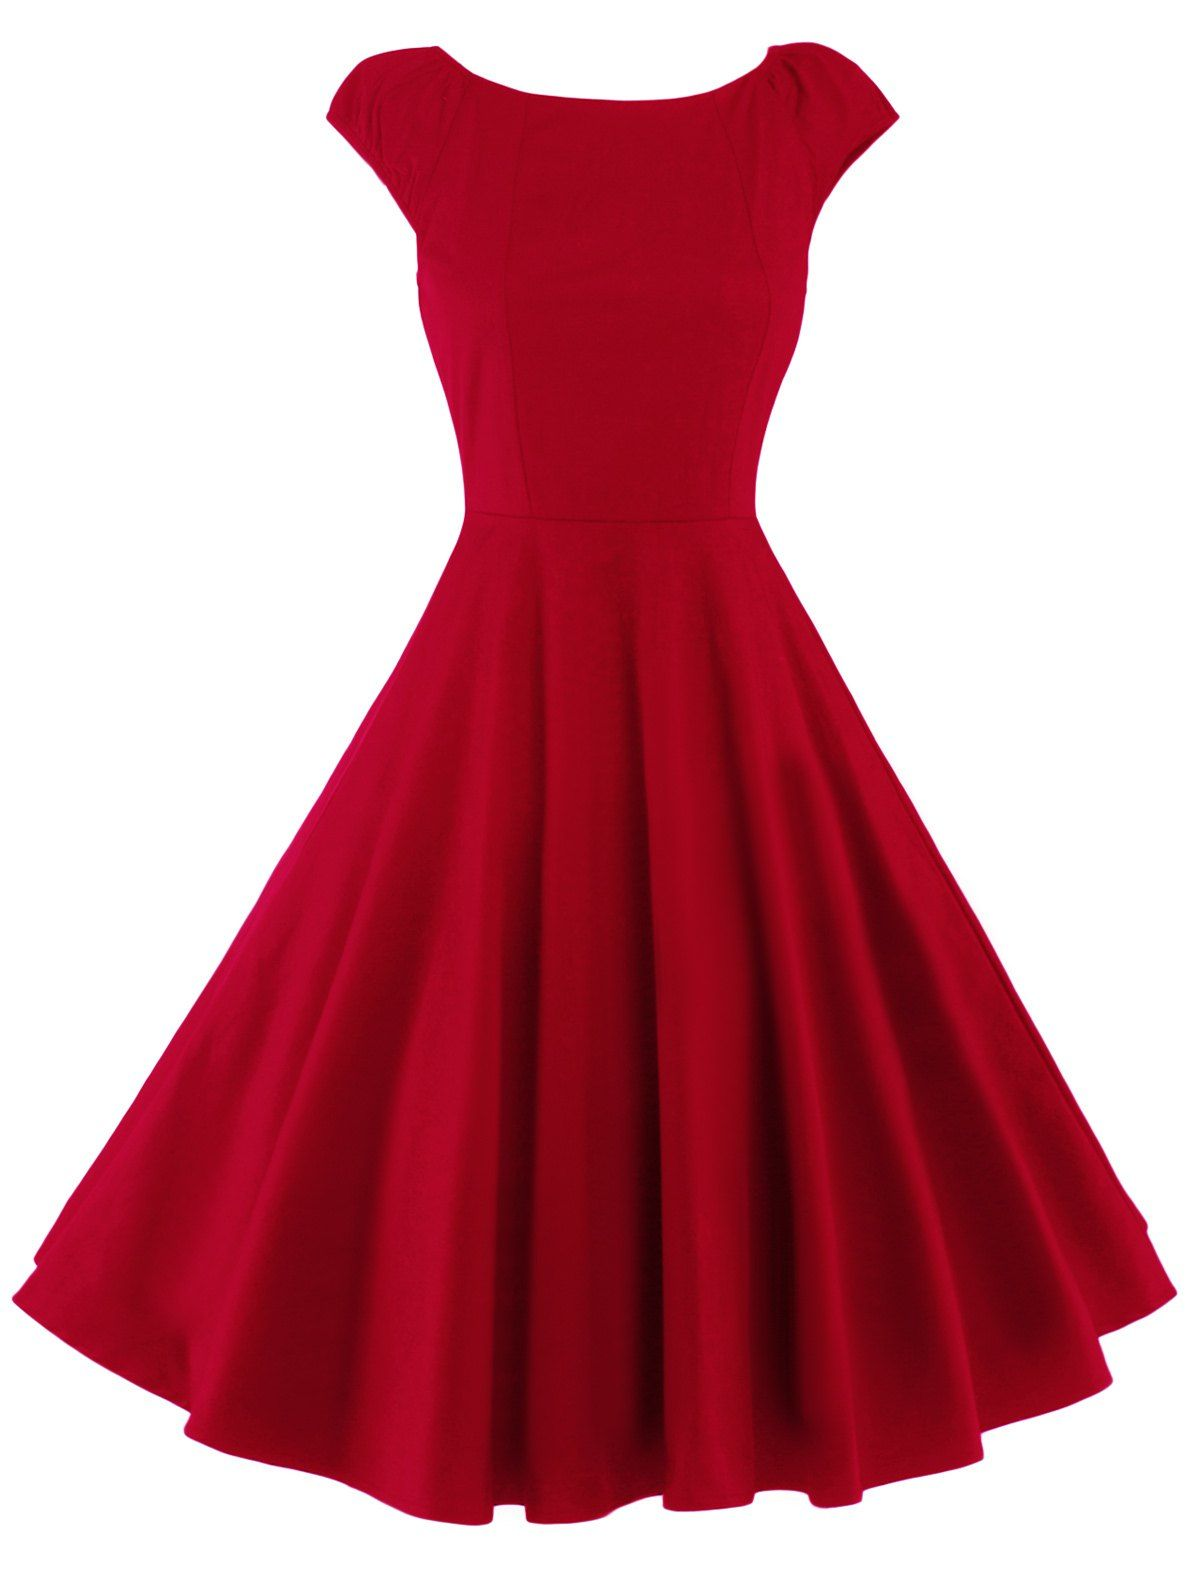 Retro High Waist Fit and Flare Dress